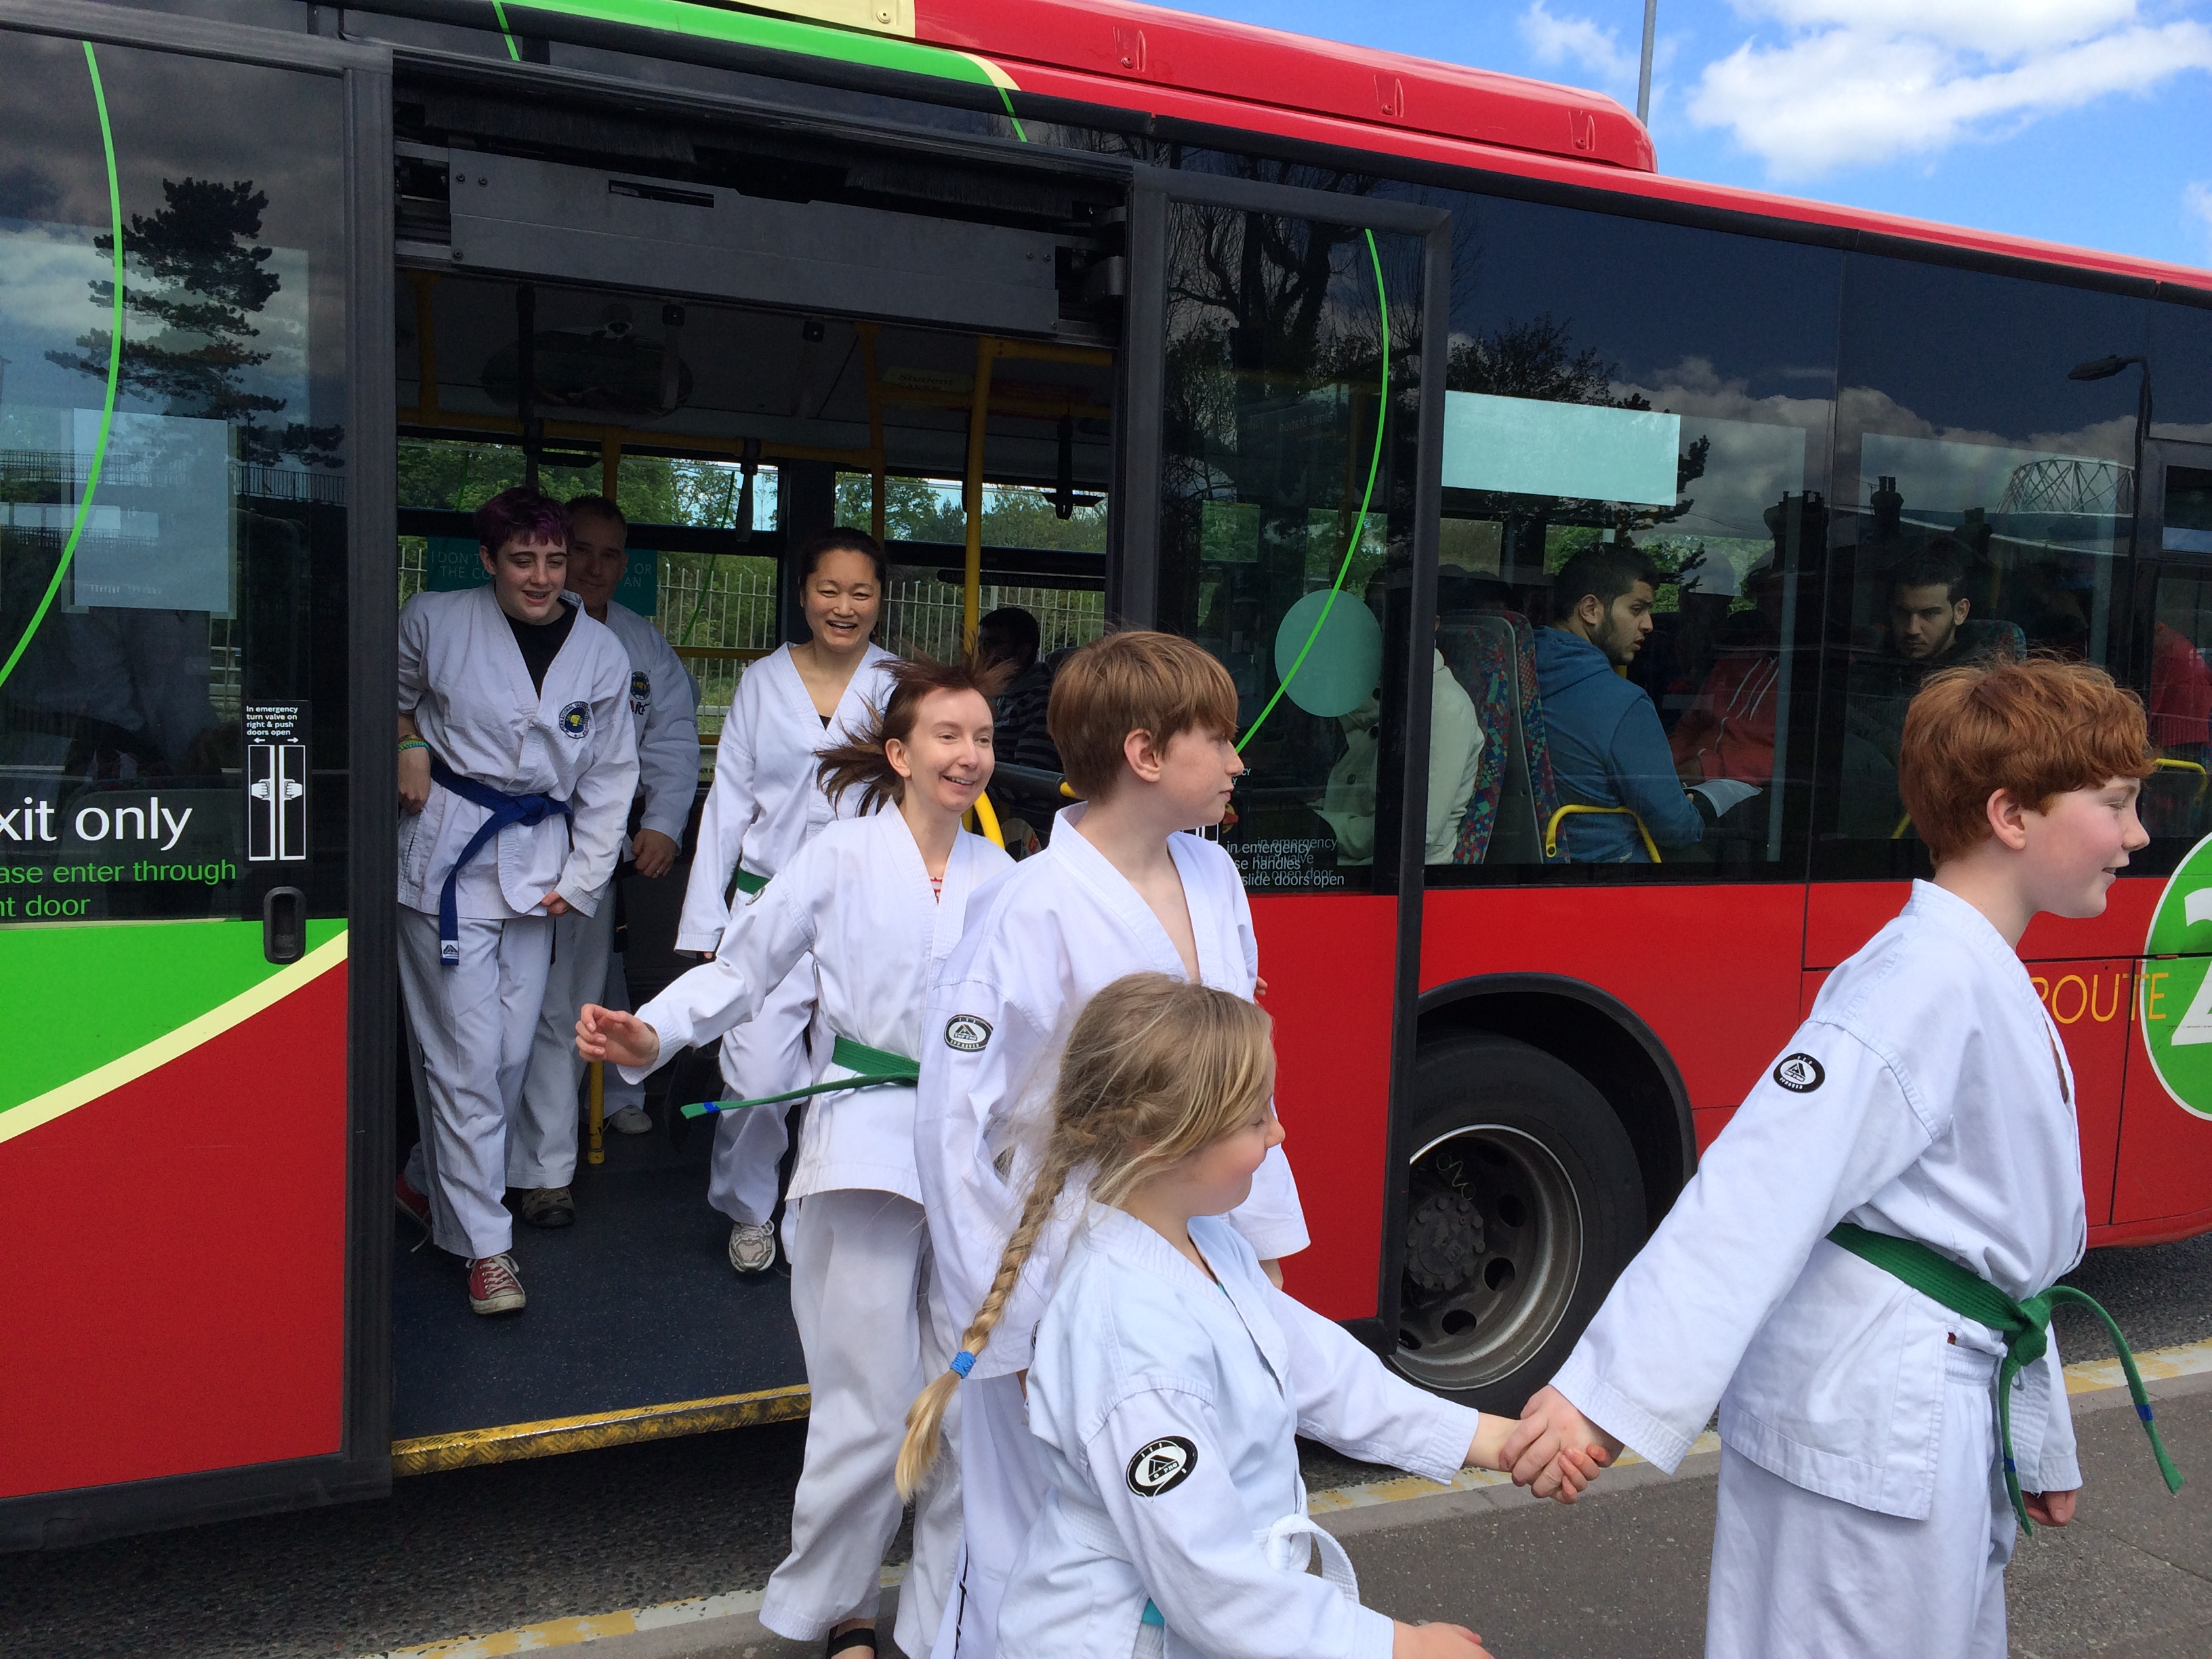 16 Taekwondo Students get on a Bus